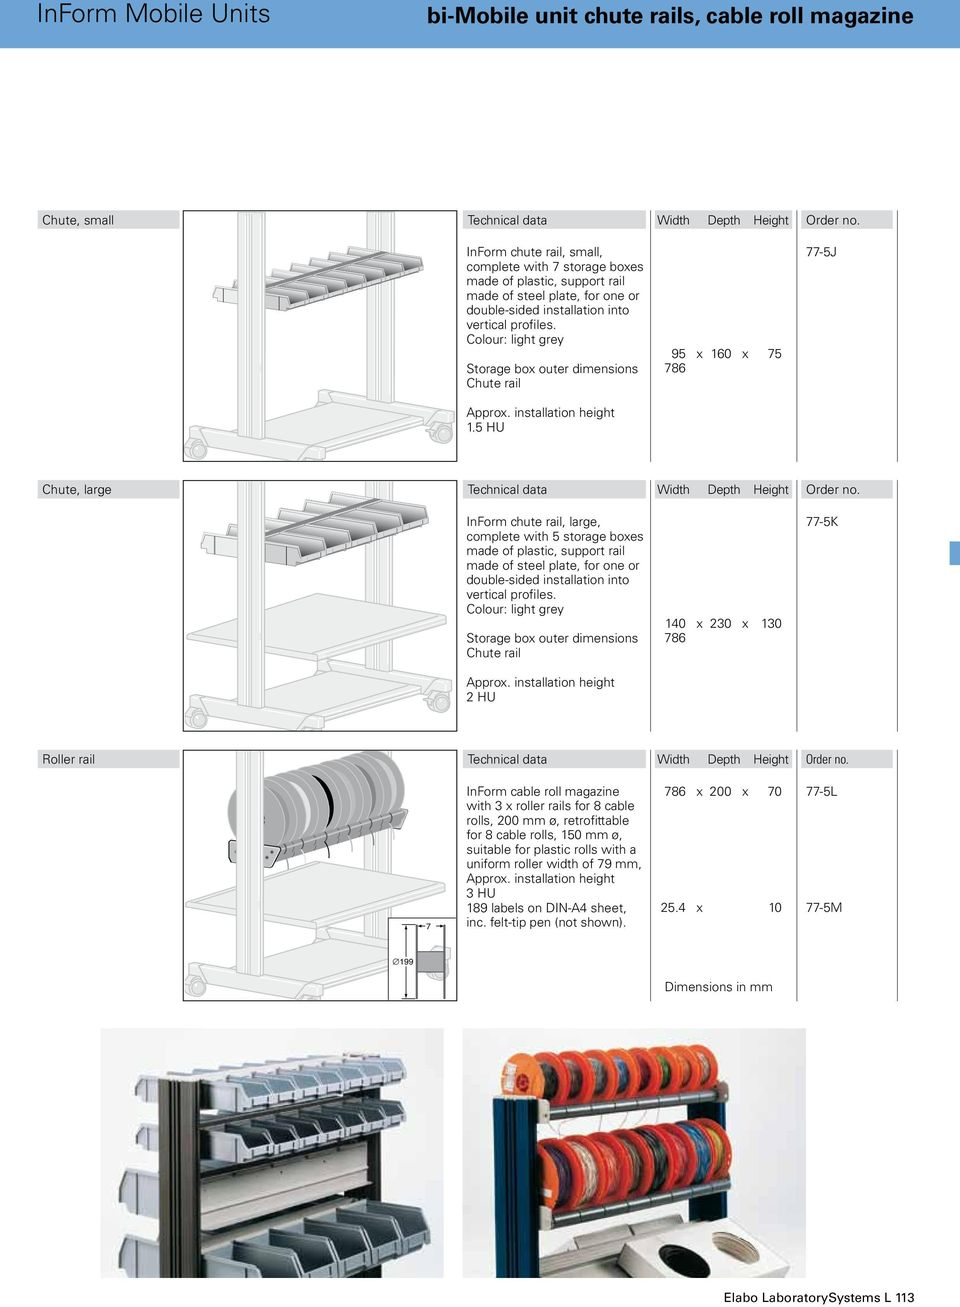 5 HU 95 x 160 x 75 786 77-5J Chute, large InForm chute rail, large, complete with 5 storage boxes made of plastic, support rail made of steel plate, for one or double-sided installation into vertical